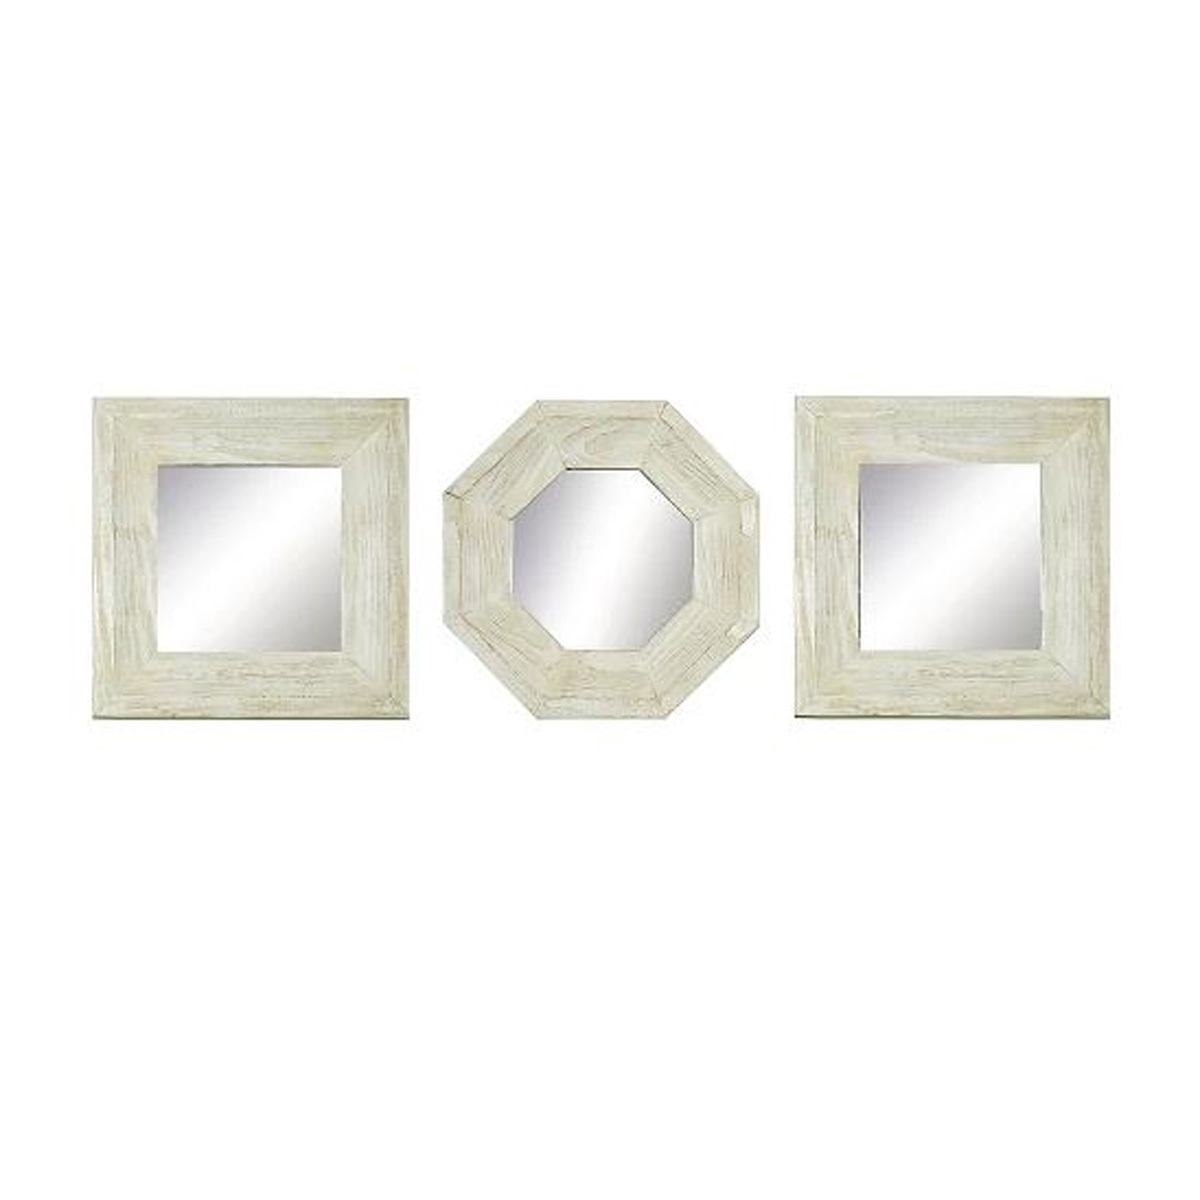 two square mirrors and one octagonal mirror with white wood frames photo